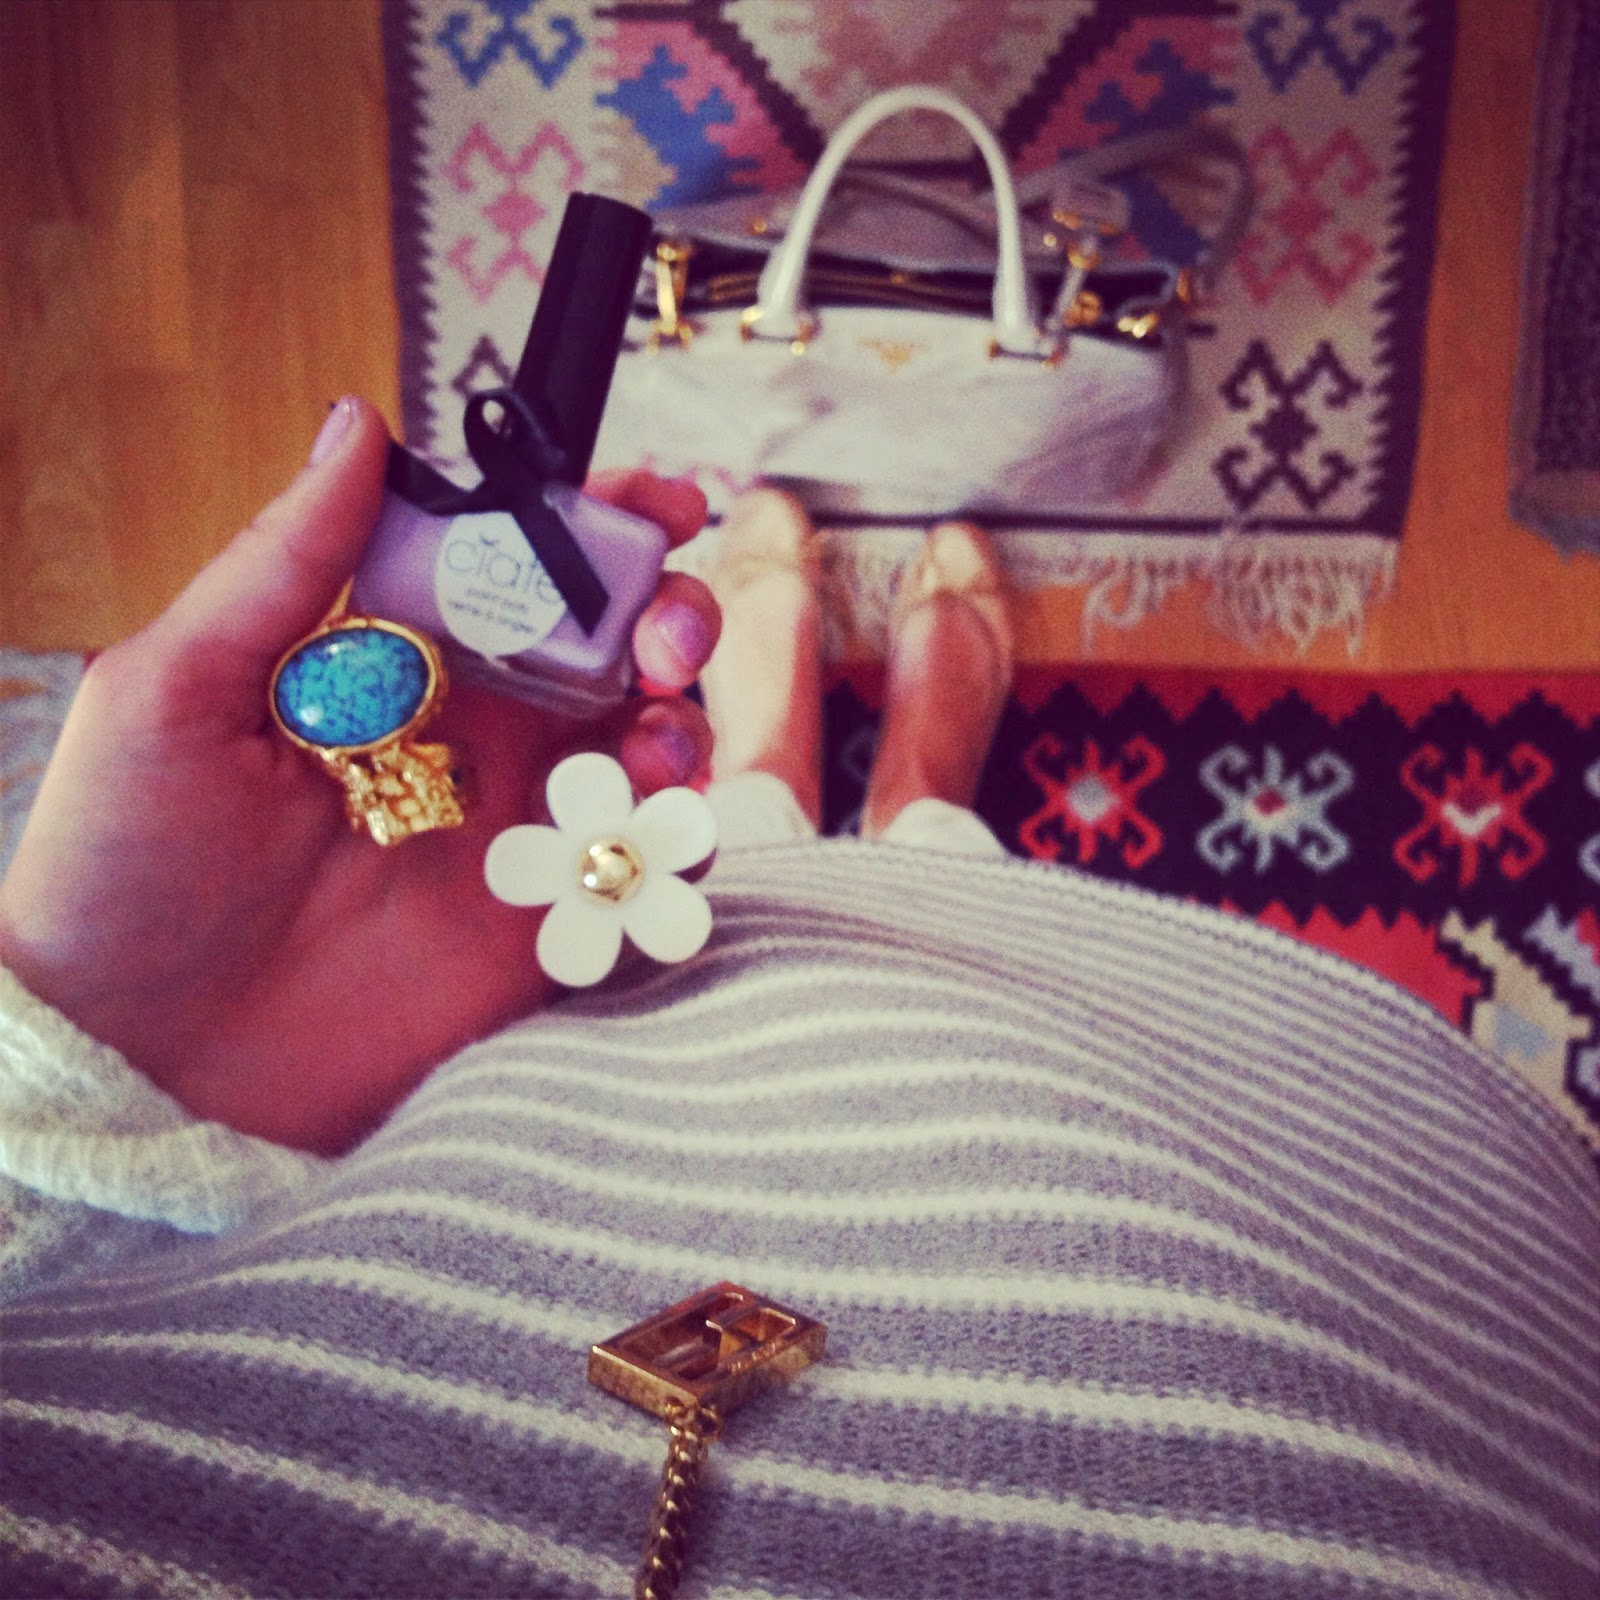 fendi, fendi jewellery, ysl arty, ysl ring, ysl jewellery, gap, gap jumper, french sole, prada bag, gap ss 14